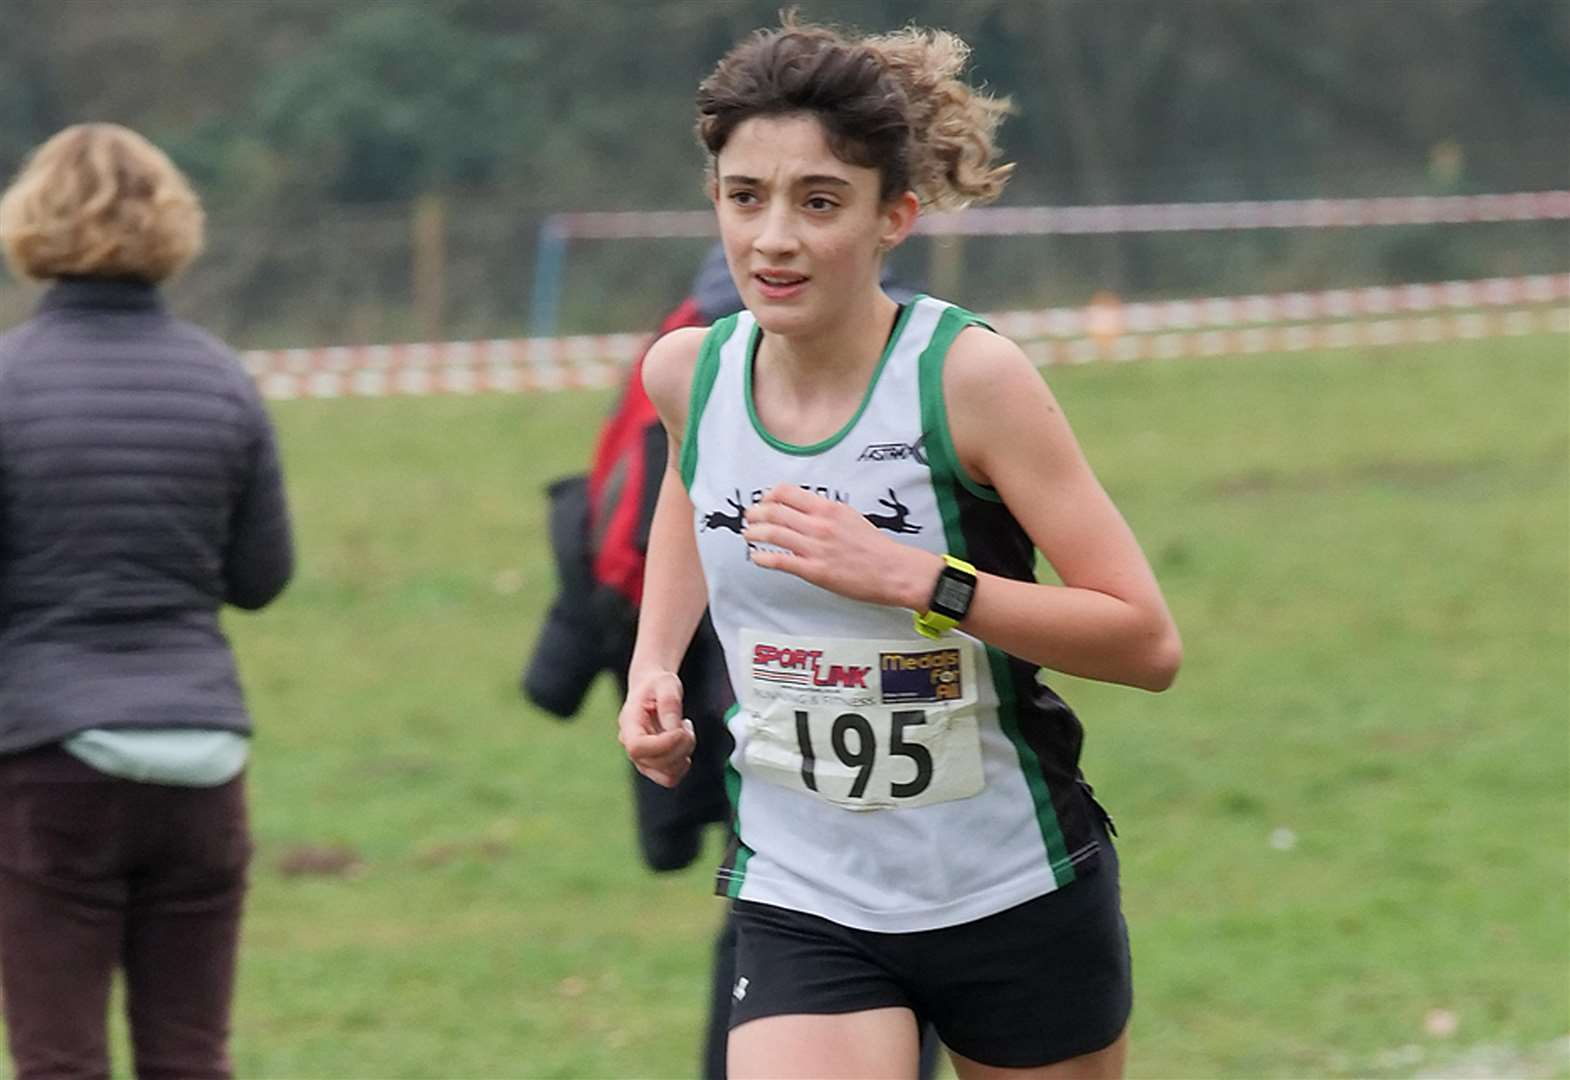 Norfolk runners converge on Thetford for cross county championships